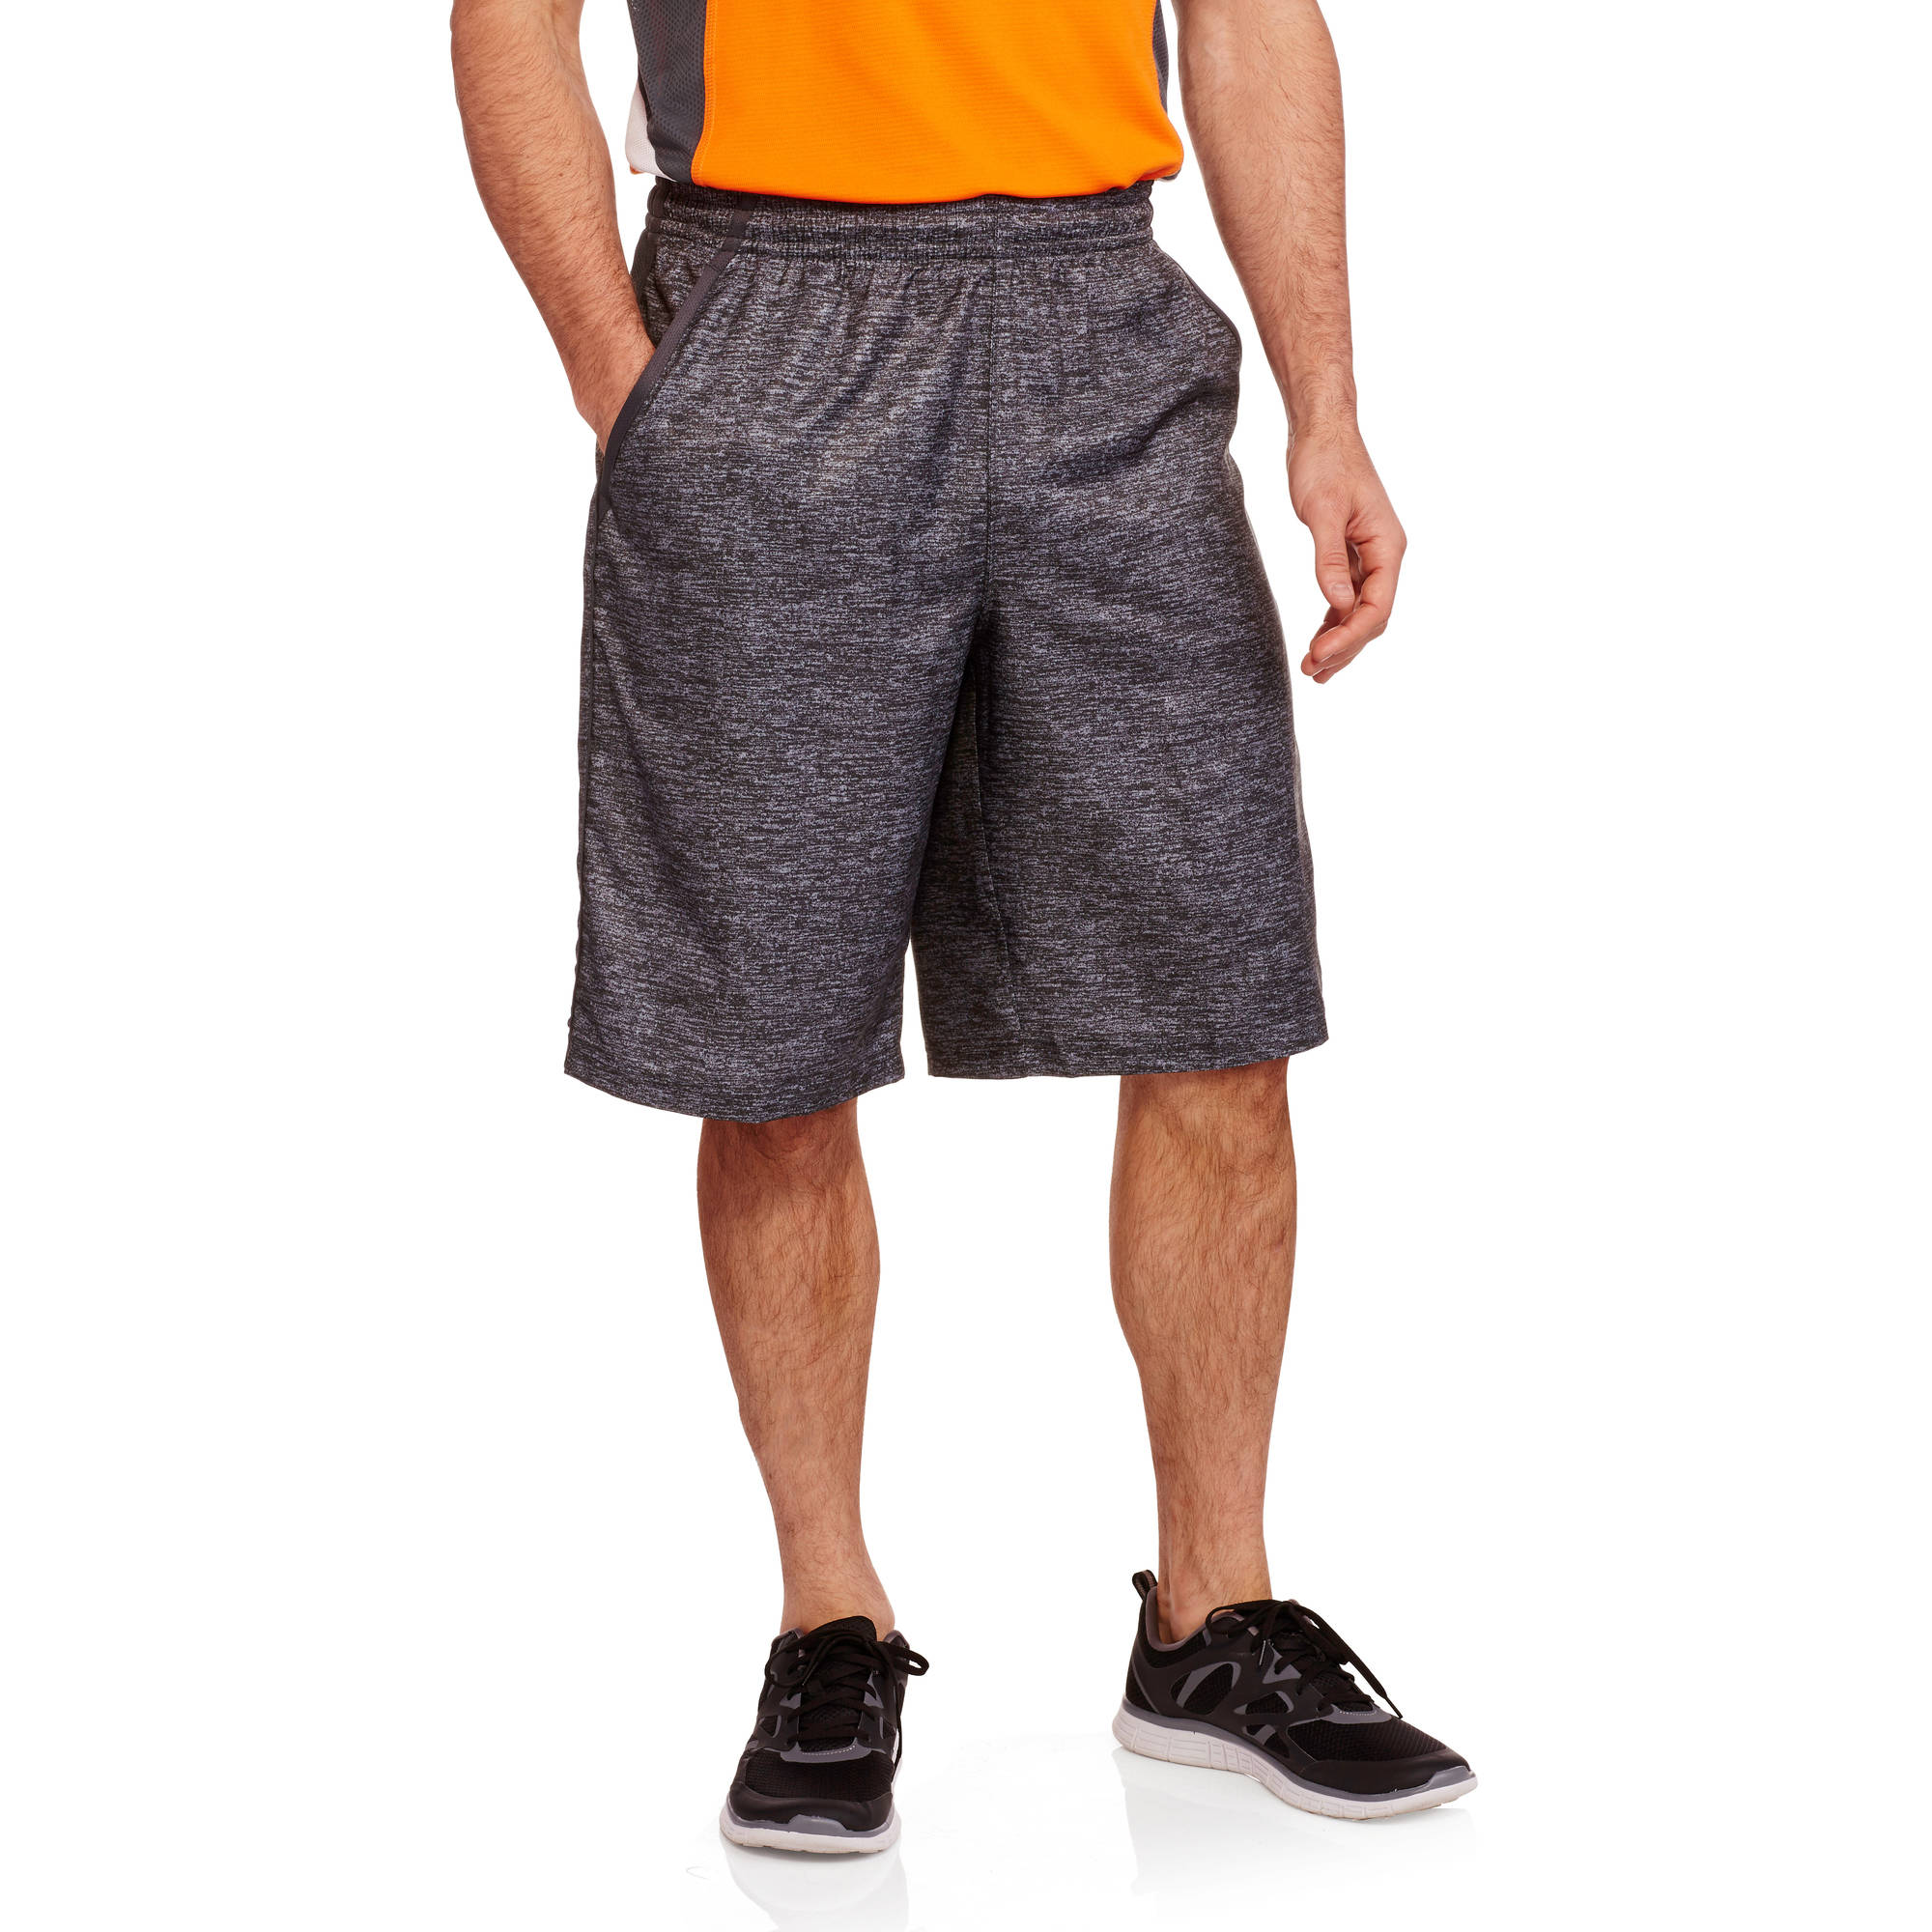 AND1 Men's Post Game Shorts